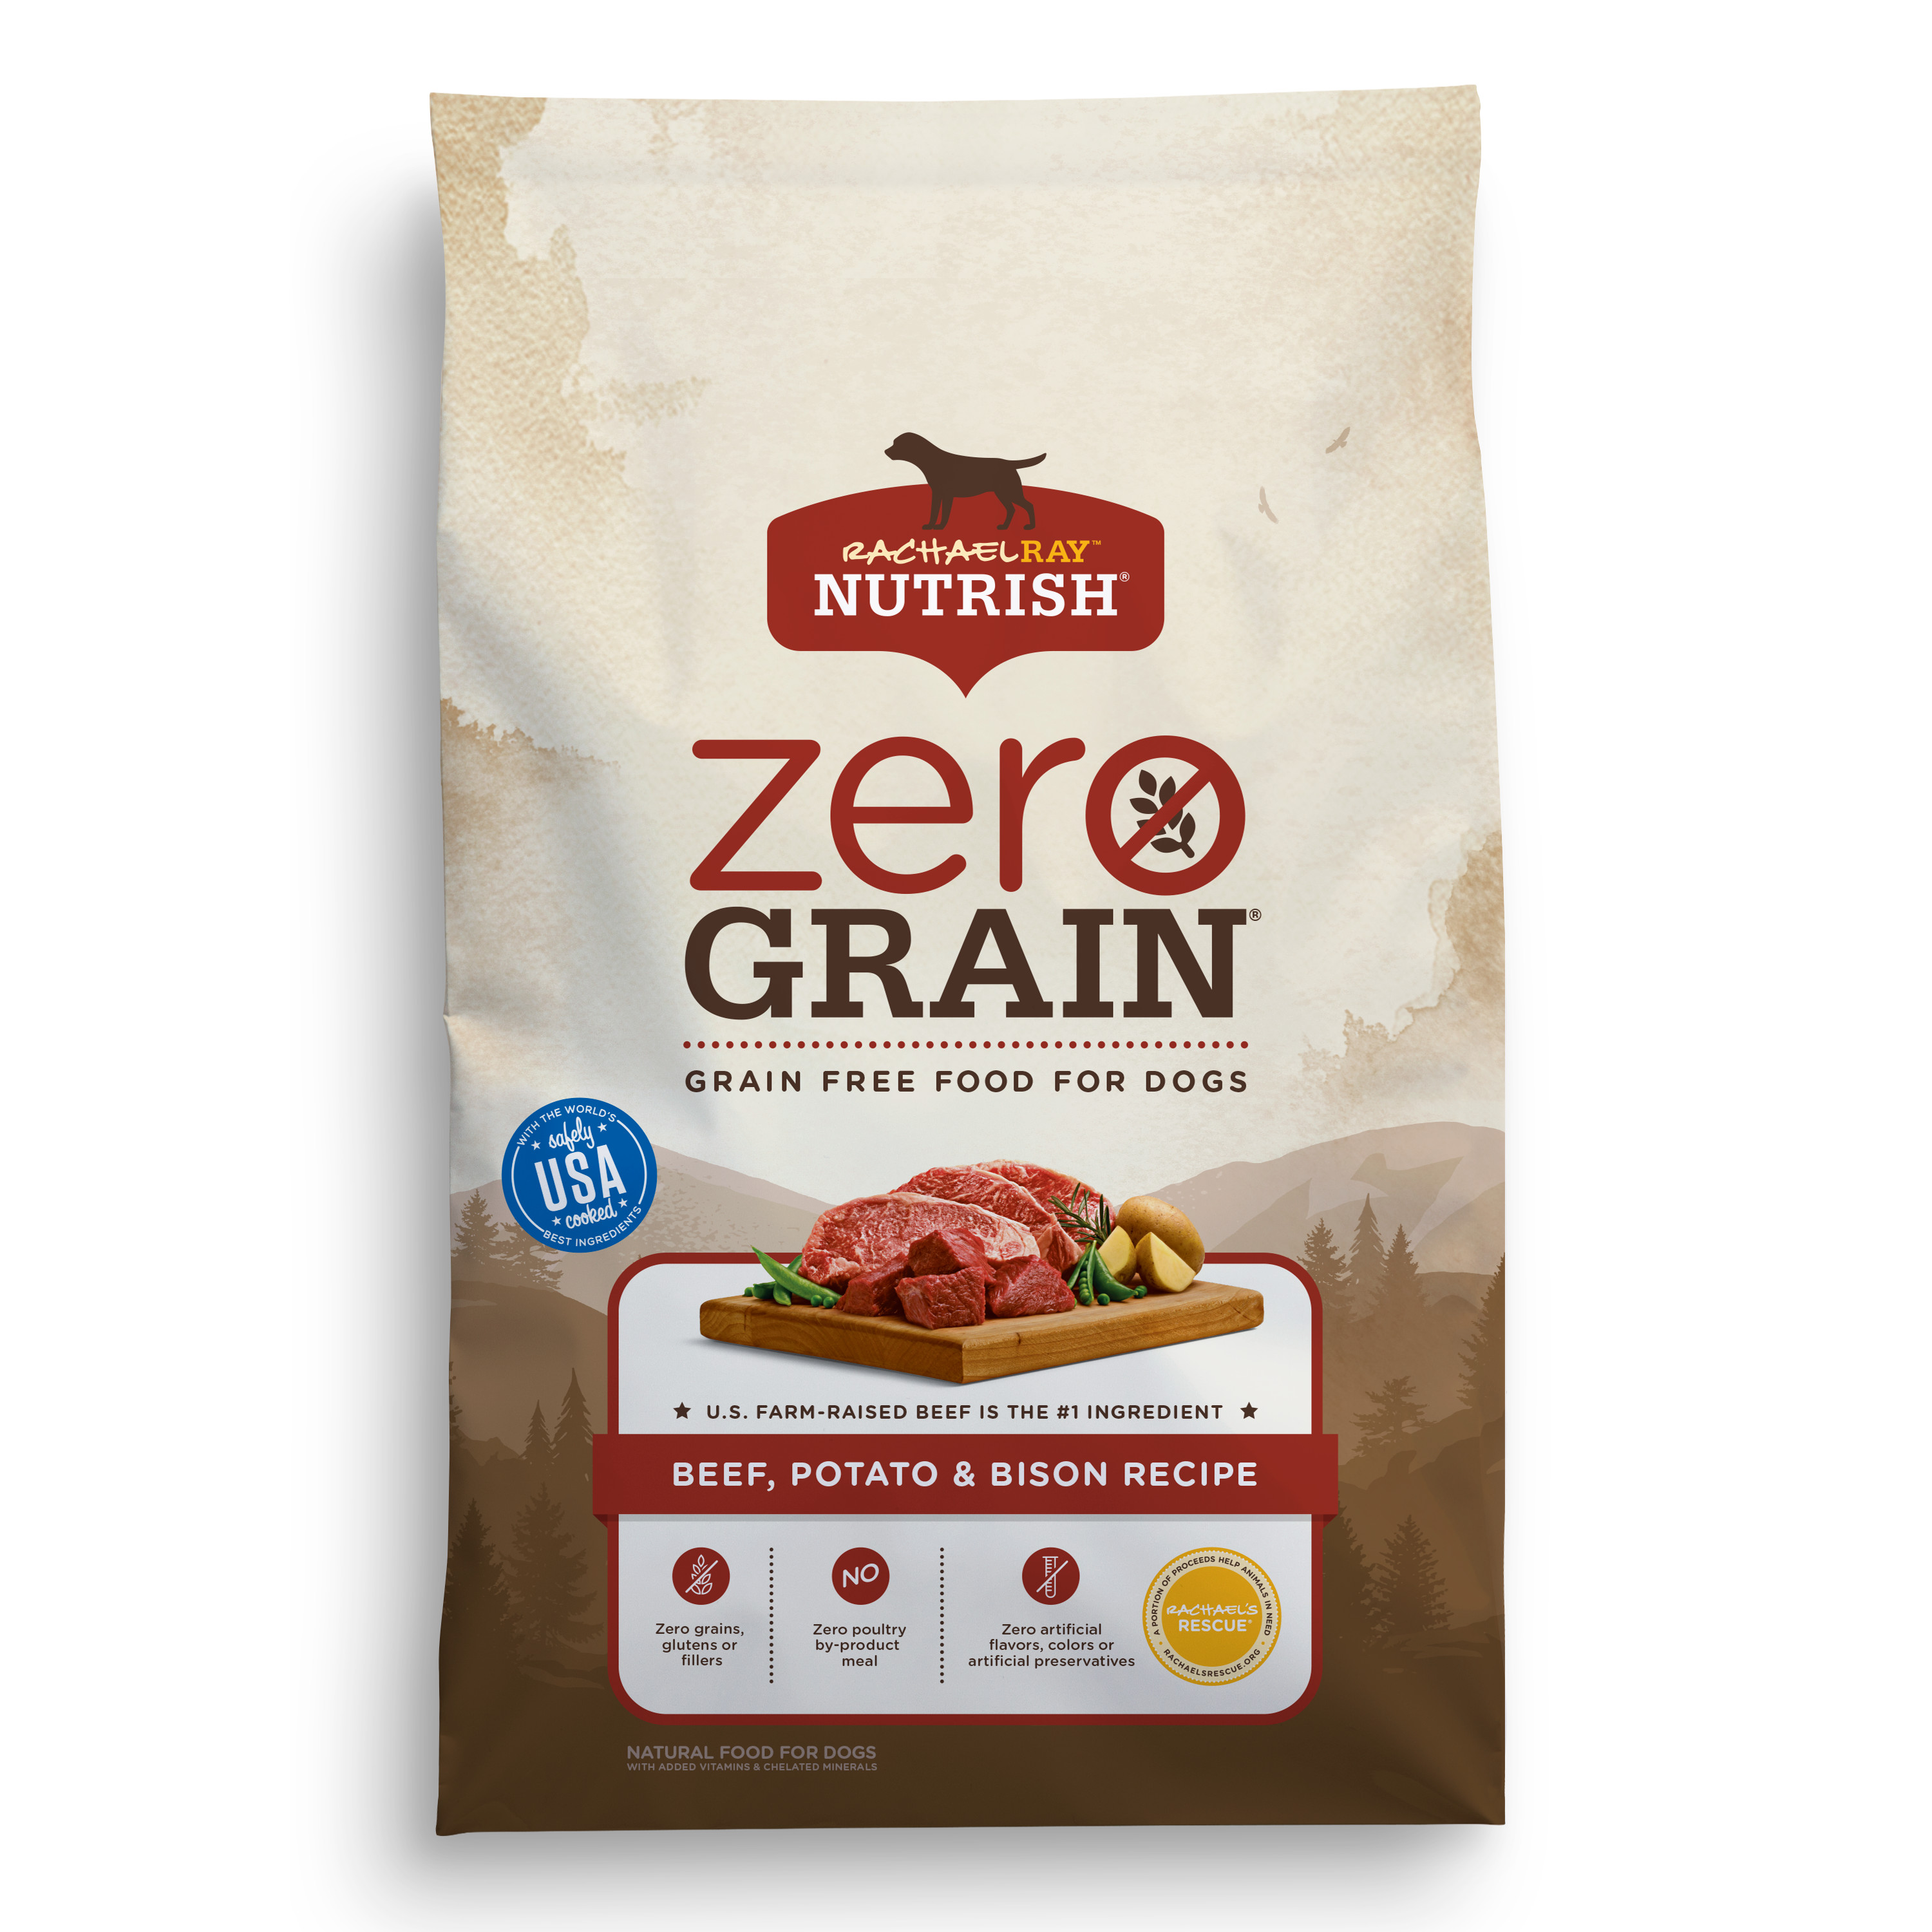 Rachael Ray Nutrish Zero Grain Natural Dry Dog Food, Beef, Potato & Bison Grain Free Recipe, 11 lbs